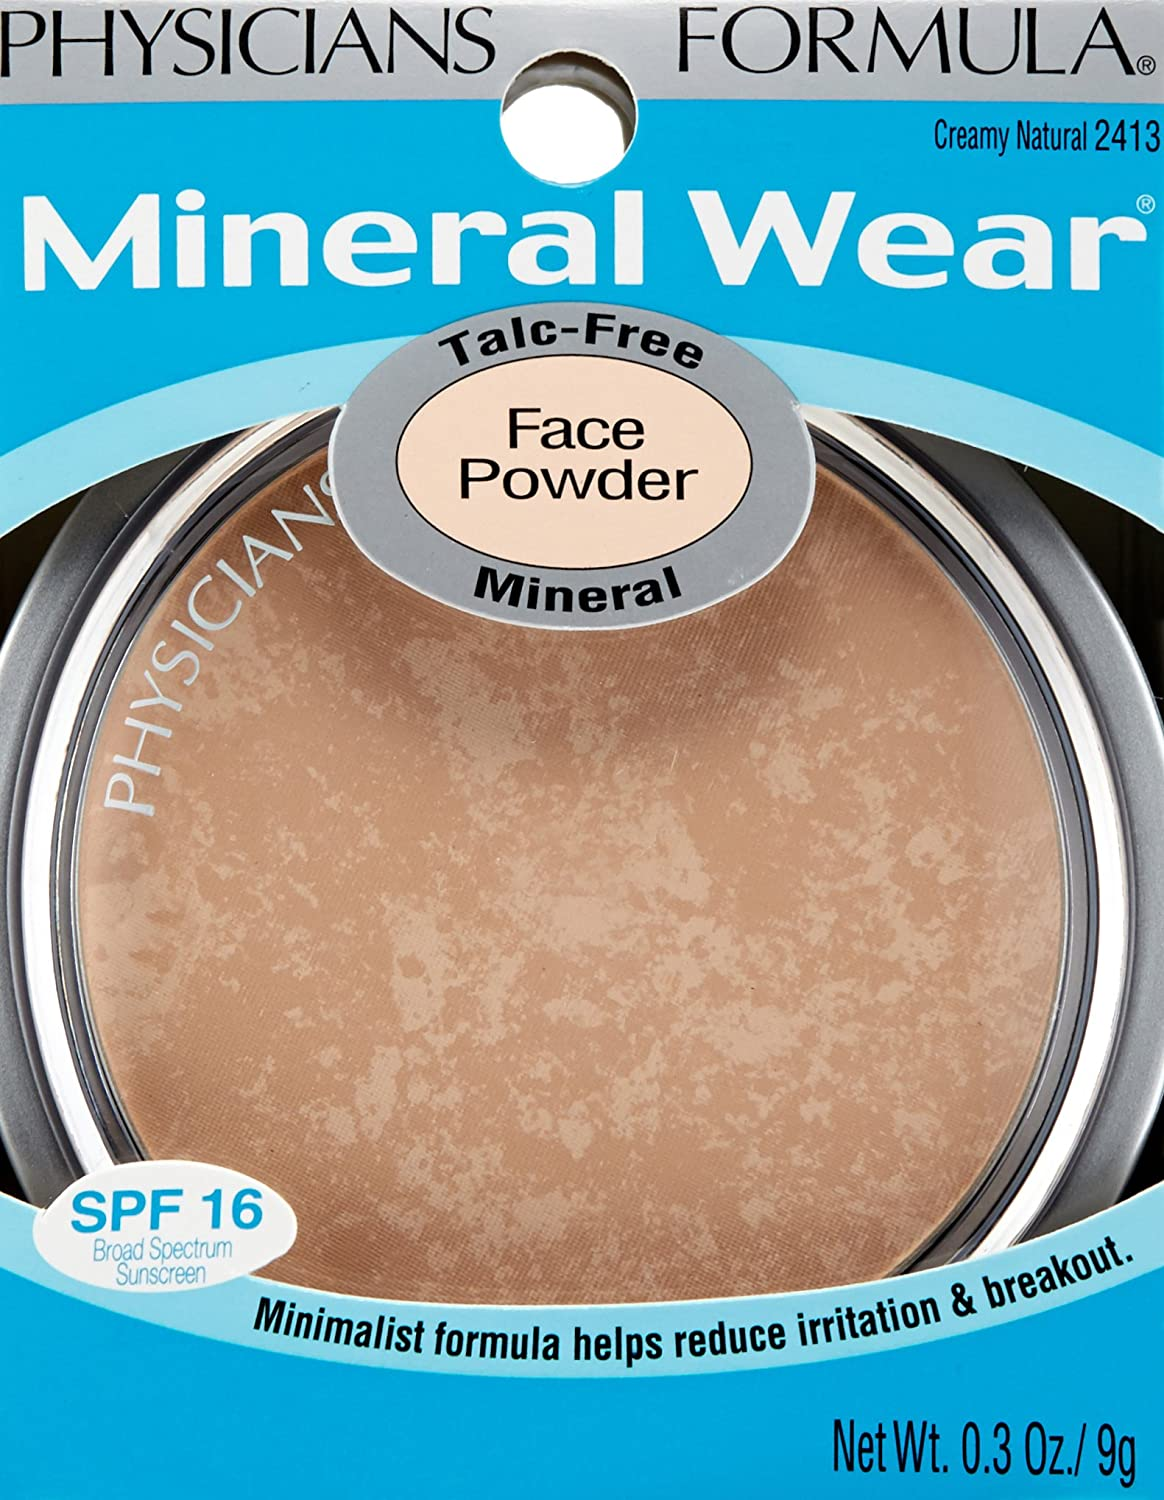 Mineral Wear Correcting Kit by Physicians Formula #20